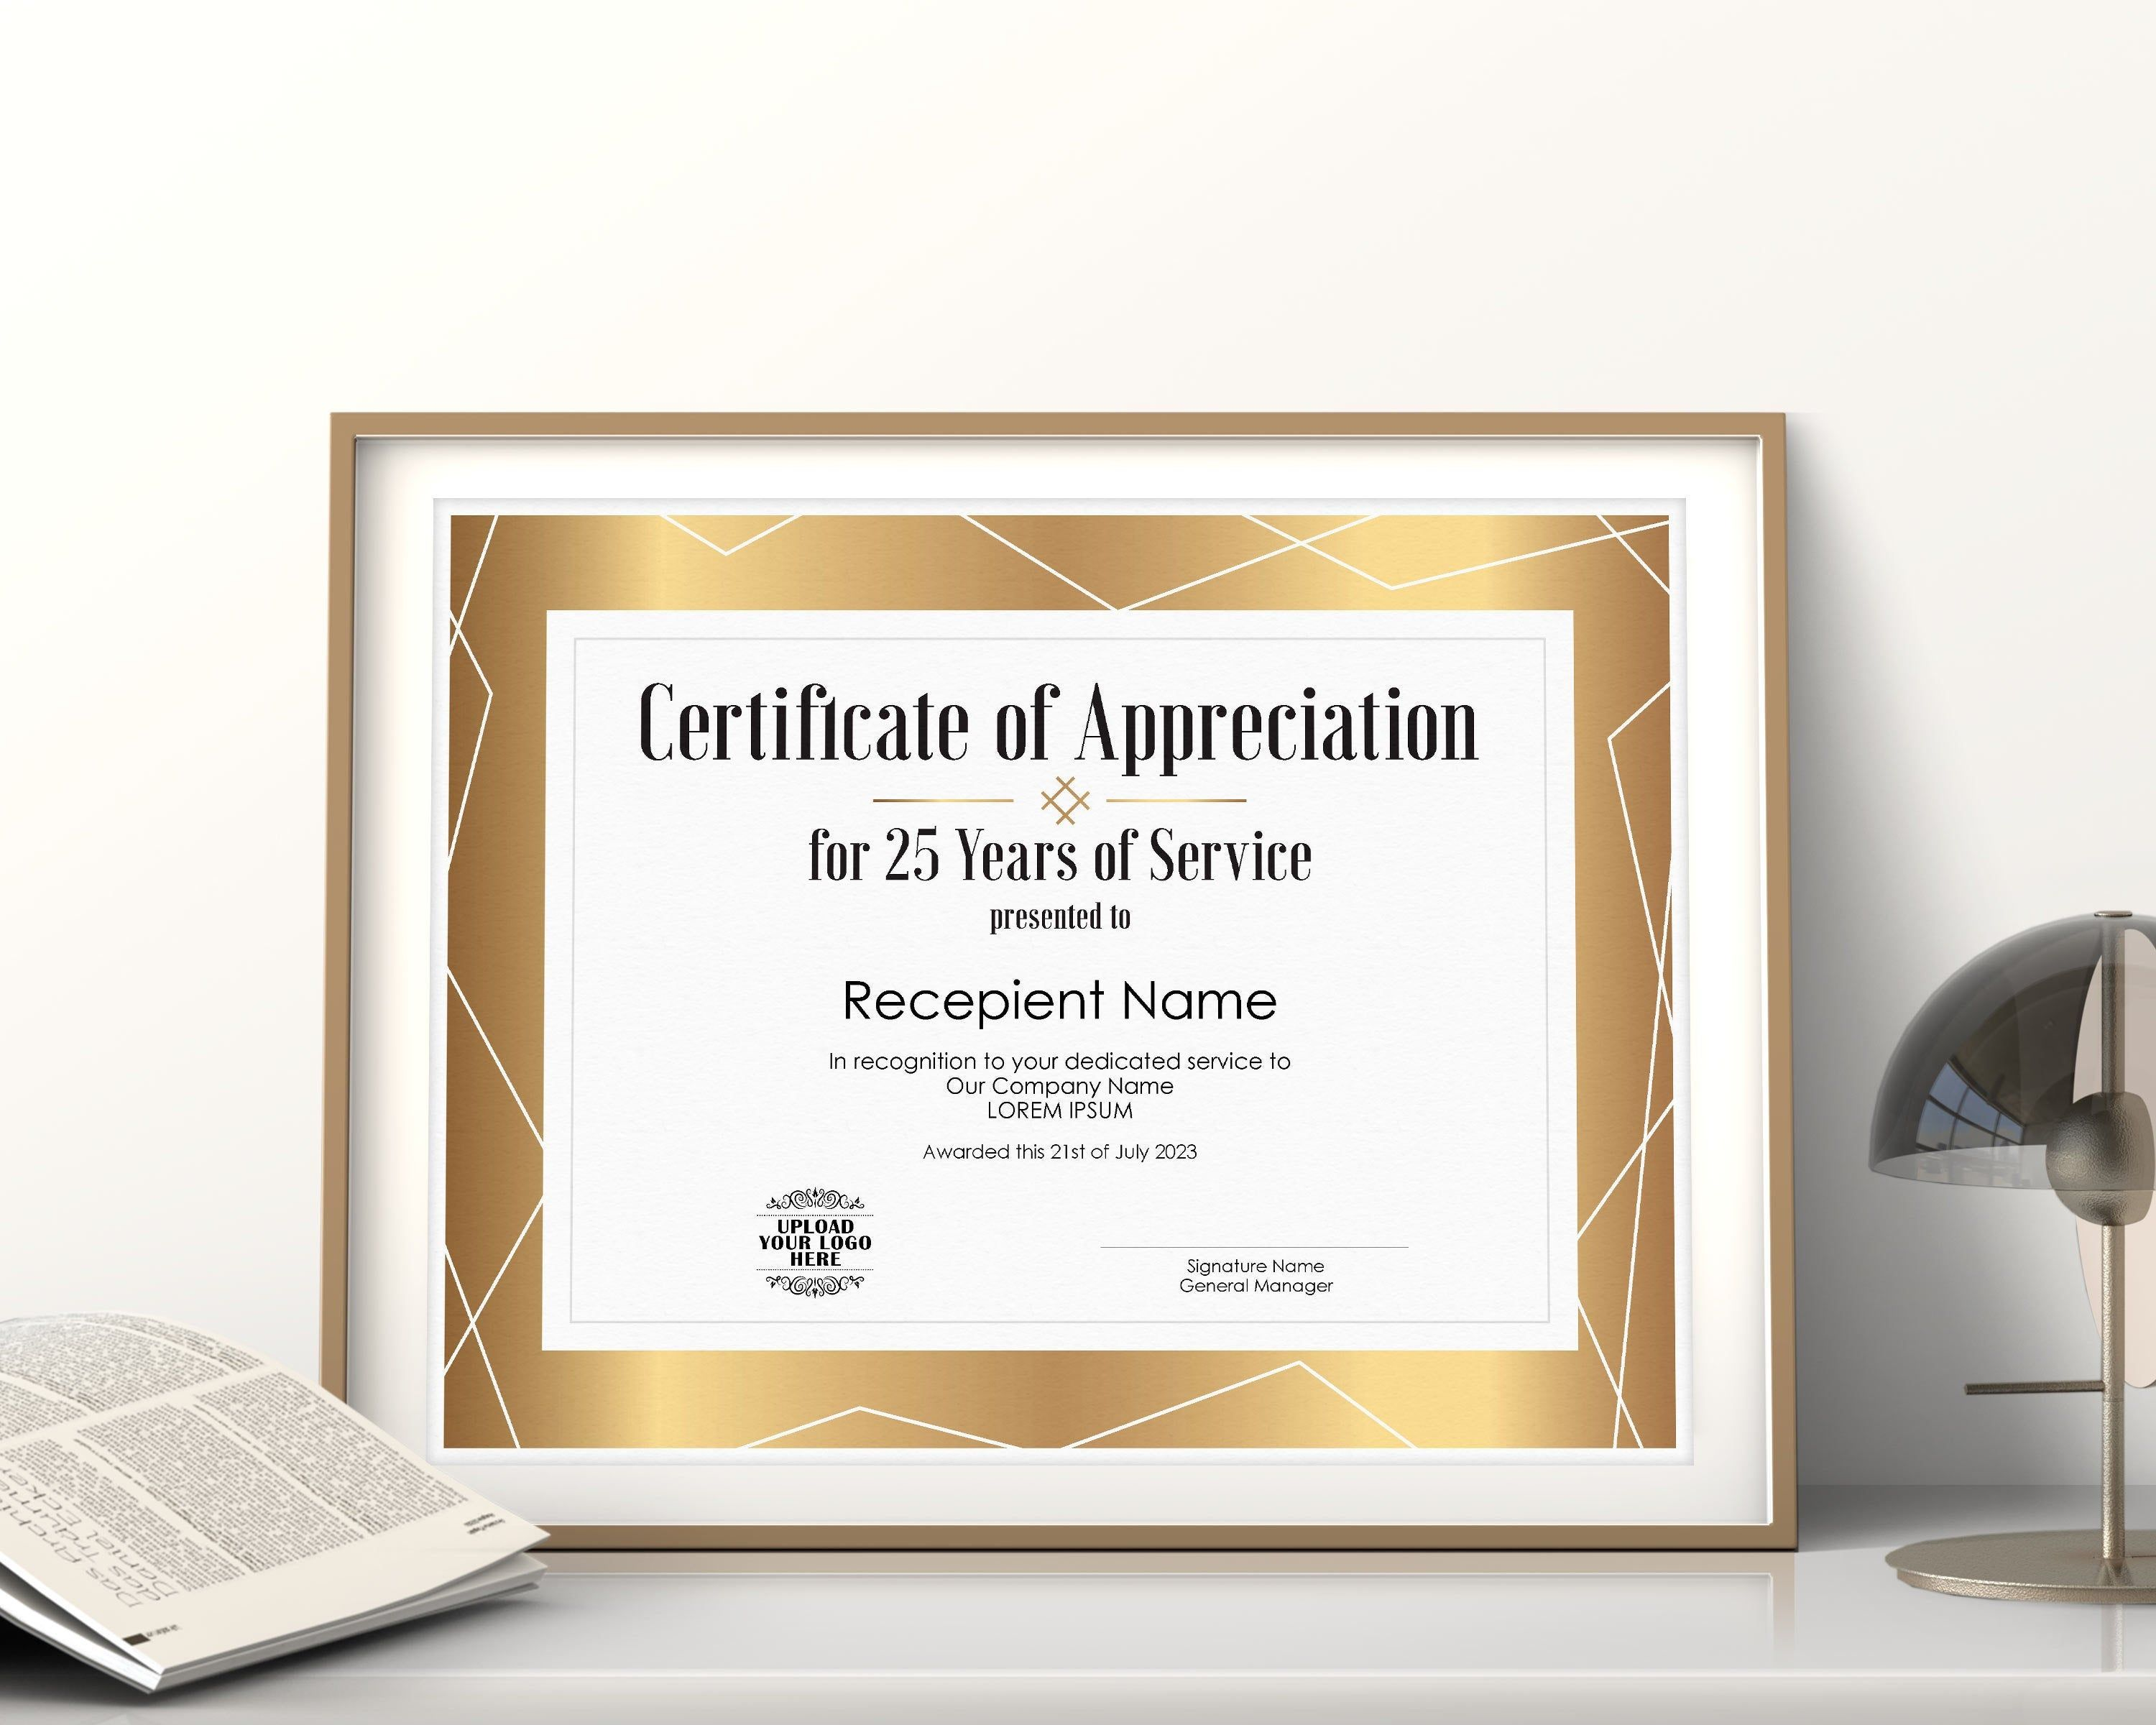 25 Years Of Service Editable Certificate Of Appreciation Etsy In 2021 Editable Certificates Certificate Of Appreciation Certificate Certificates for years of service